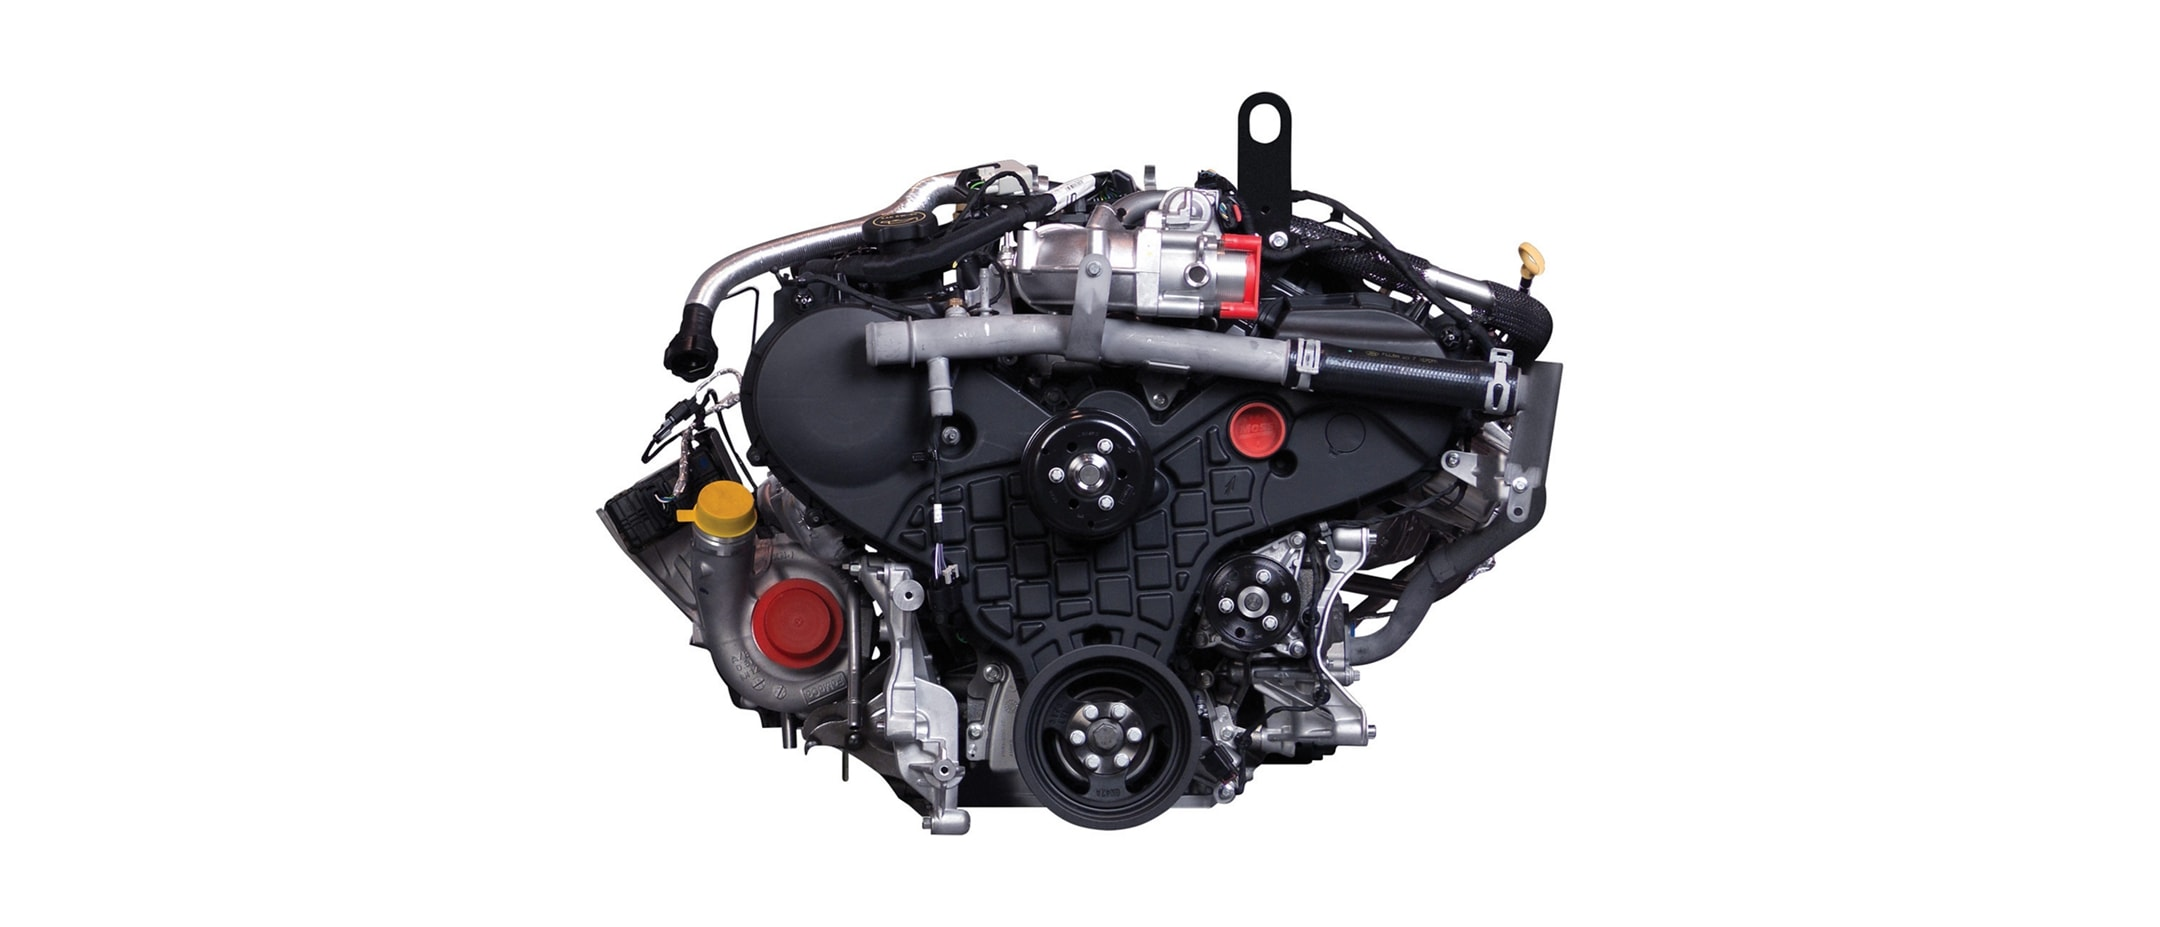 3.0L Powerstroke Turbo Diesel Ford F150 Engine